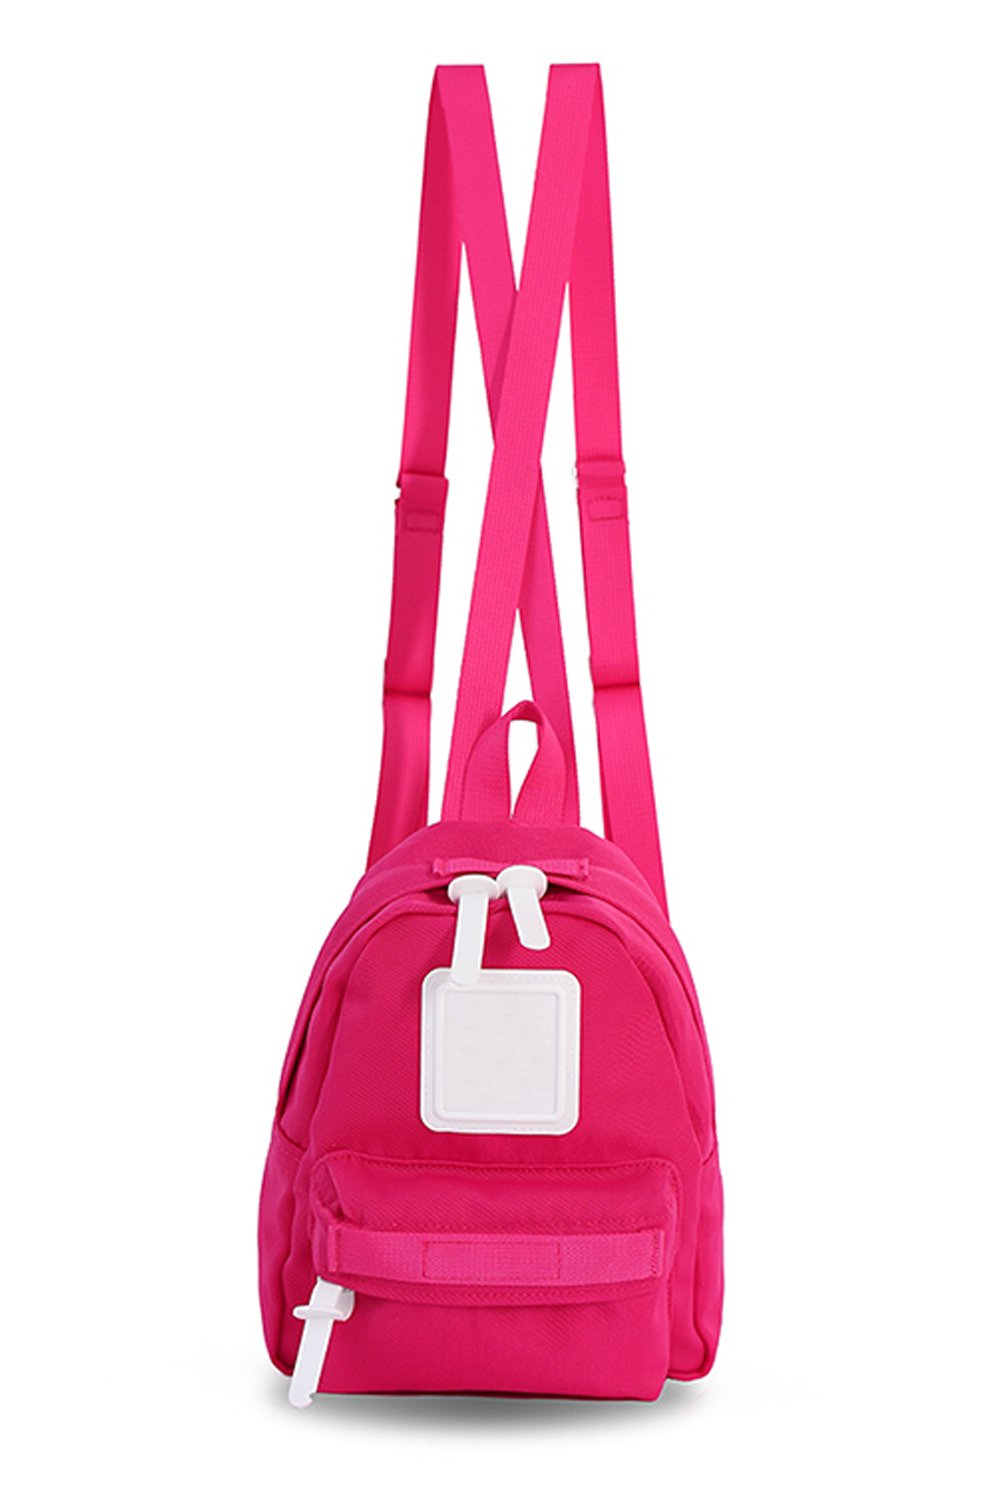 Mini Backpack For Women, Girls, Toddlers, ; Popular as a Purse, Diaper Bag, Miniature IPad or Daypack - Hot Pink